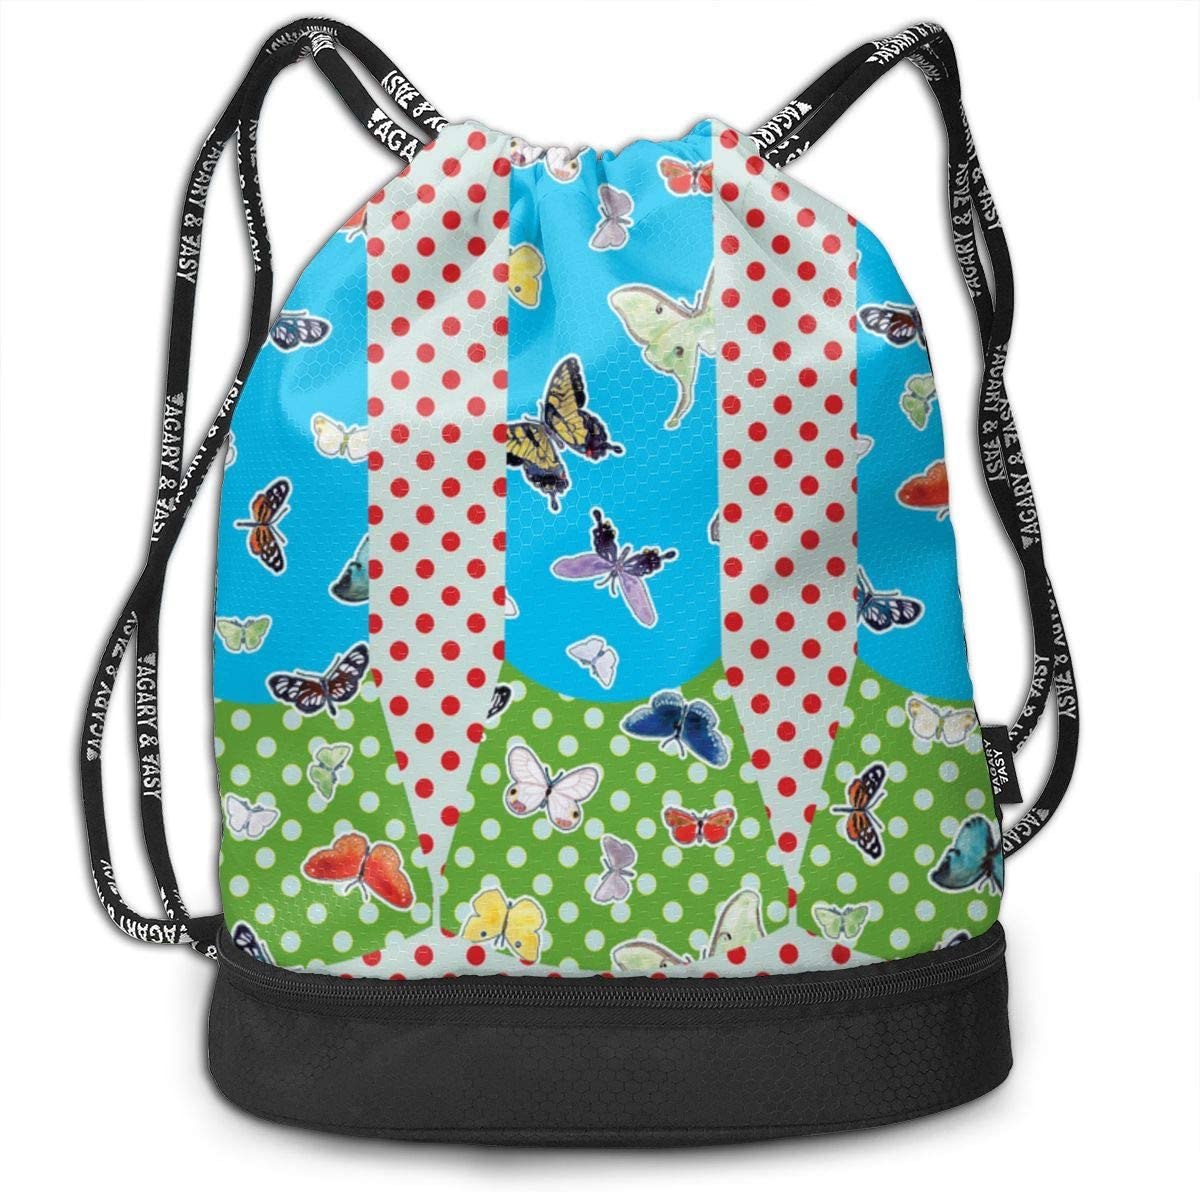 2 Super Easy Girls Trumpet Skirts Knit Only Drawstring Backpack Sports Athletic Gym Cinch Sack String Storage Bags for Hiking Travel Beach